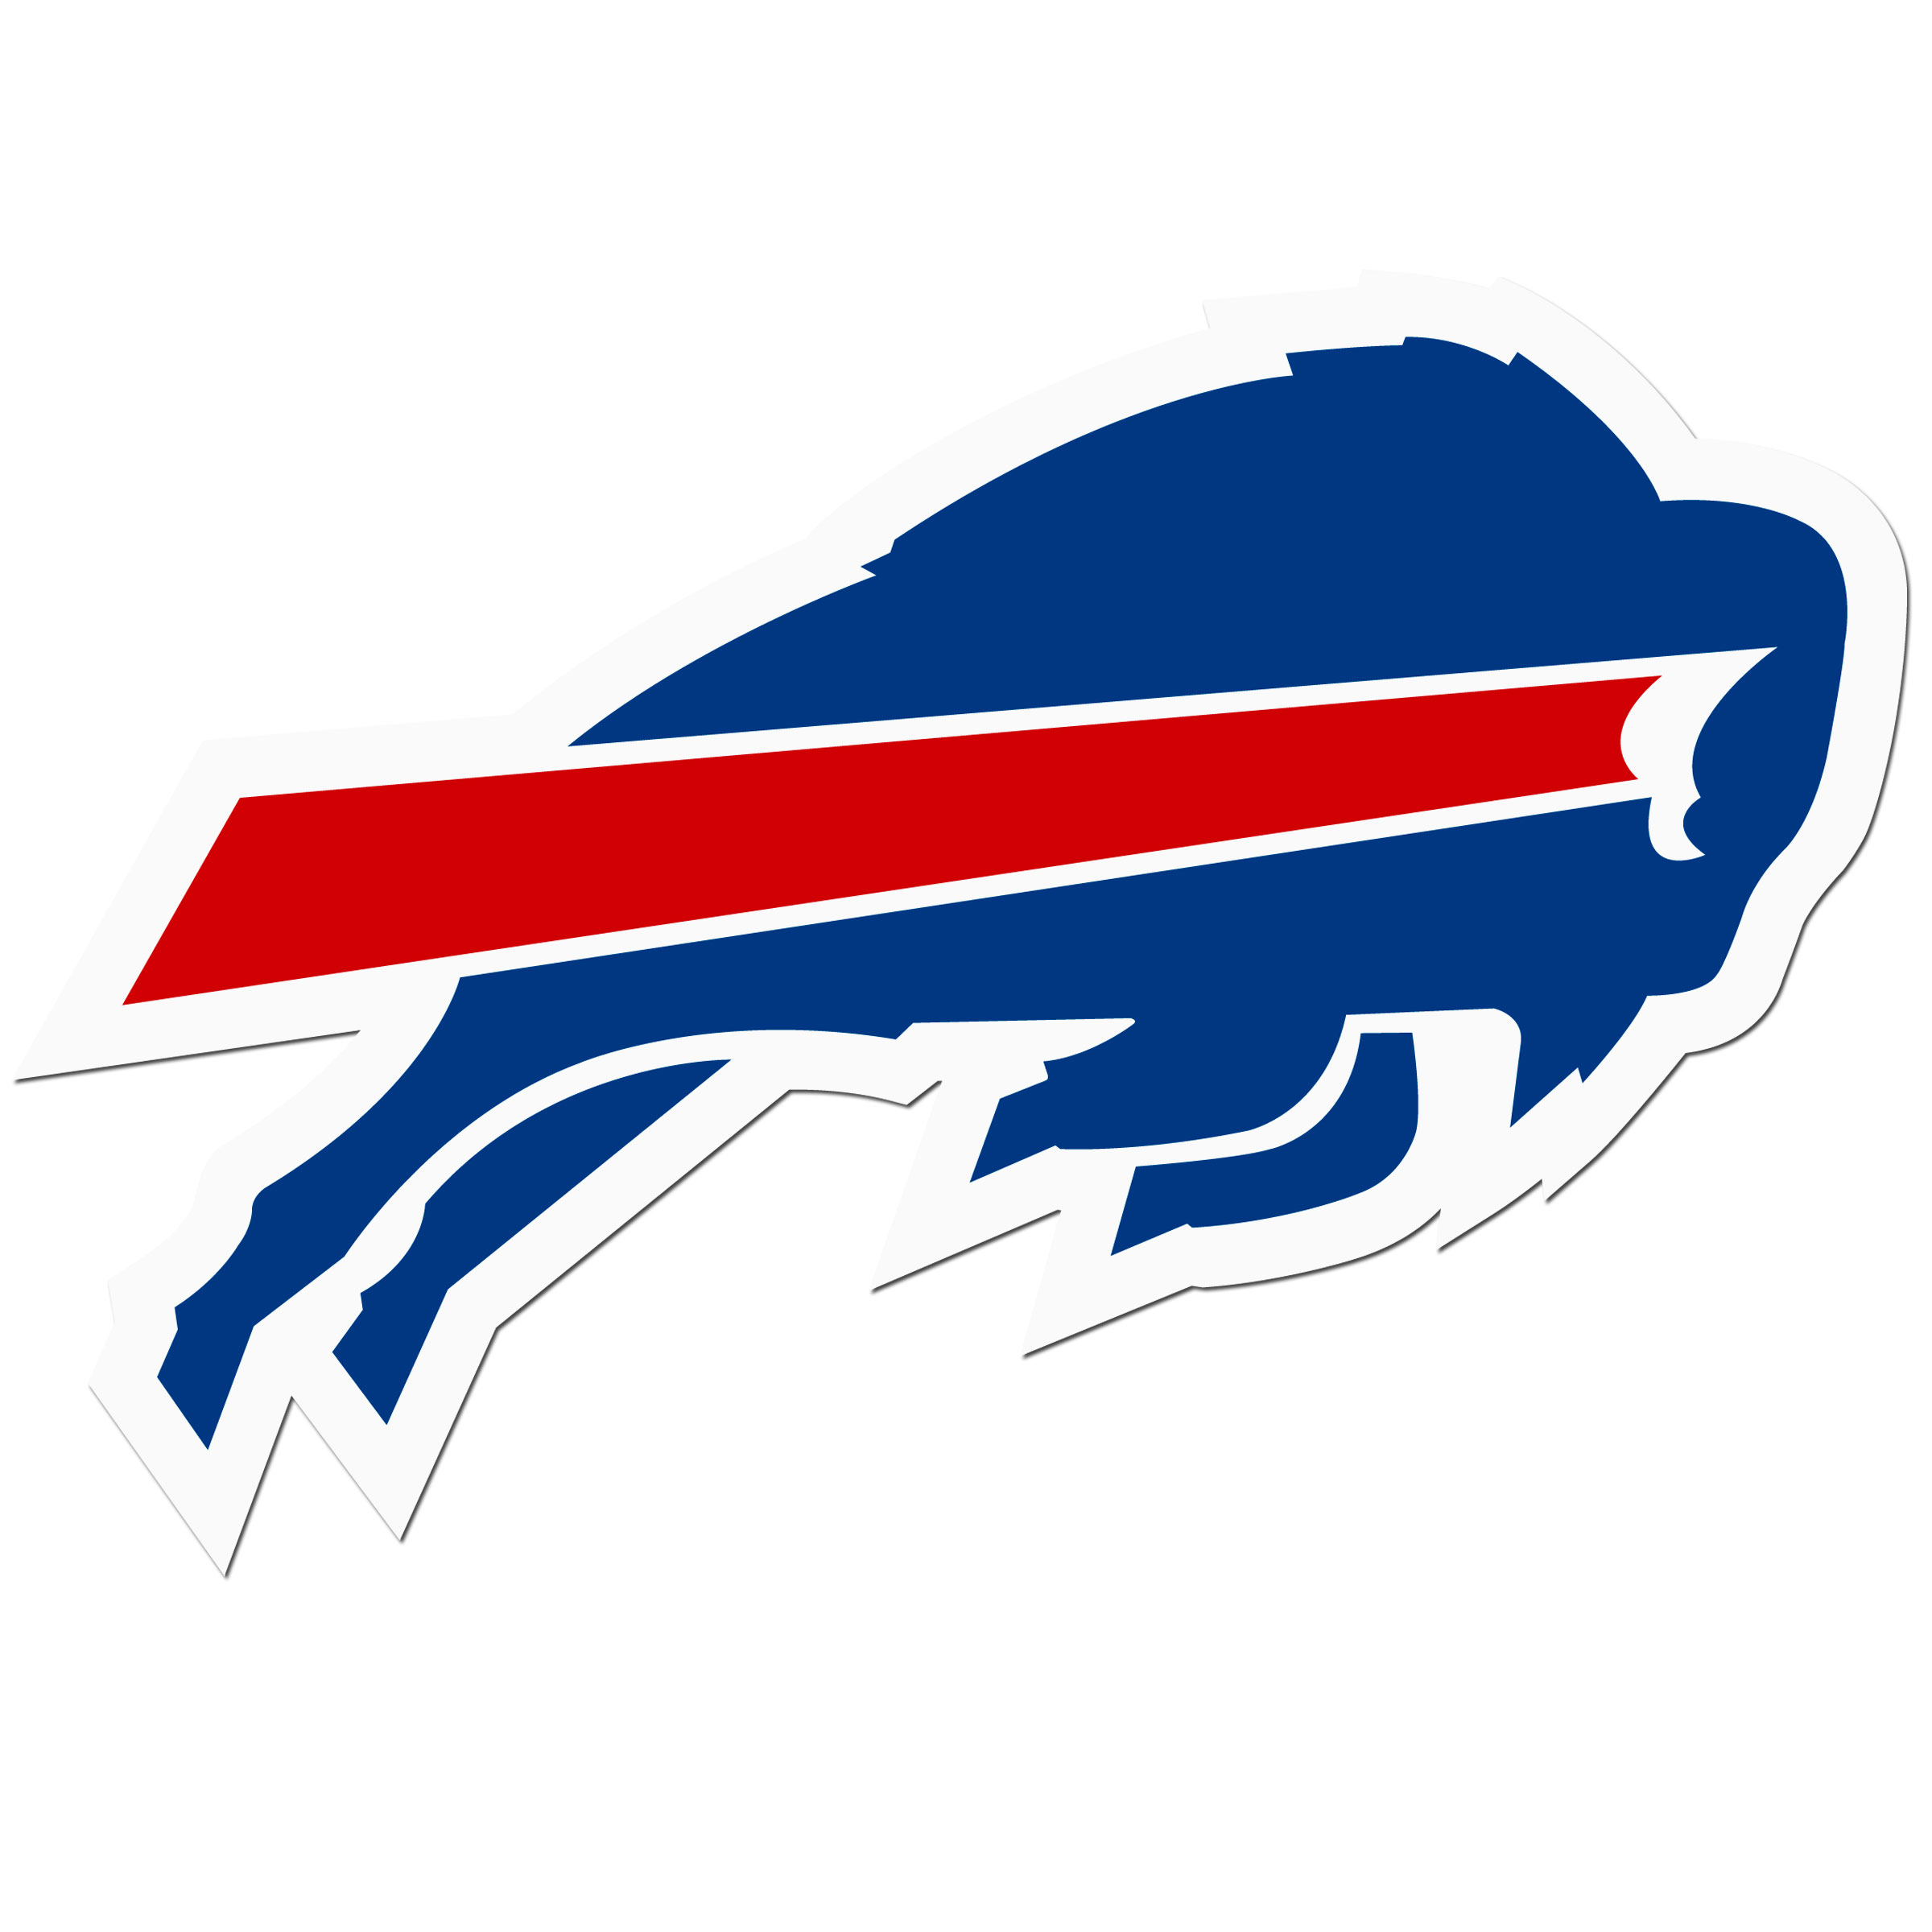 Buffalo Bills 8 inch Auto Decal - This bold, 8 inch Buffalo Bills is a great way to show off your team pride! The low tack vinyl decal is easily positioned and adjusted to make sure you get that logo in just the right spot on your vehicle. Designed to be used on the outside of the window.